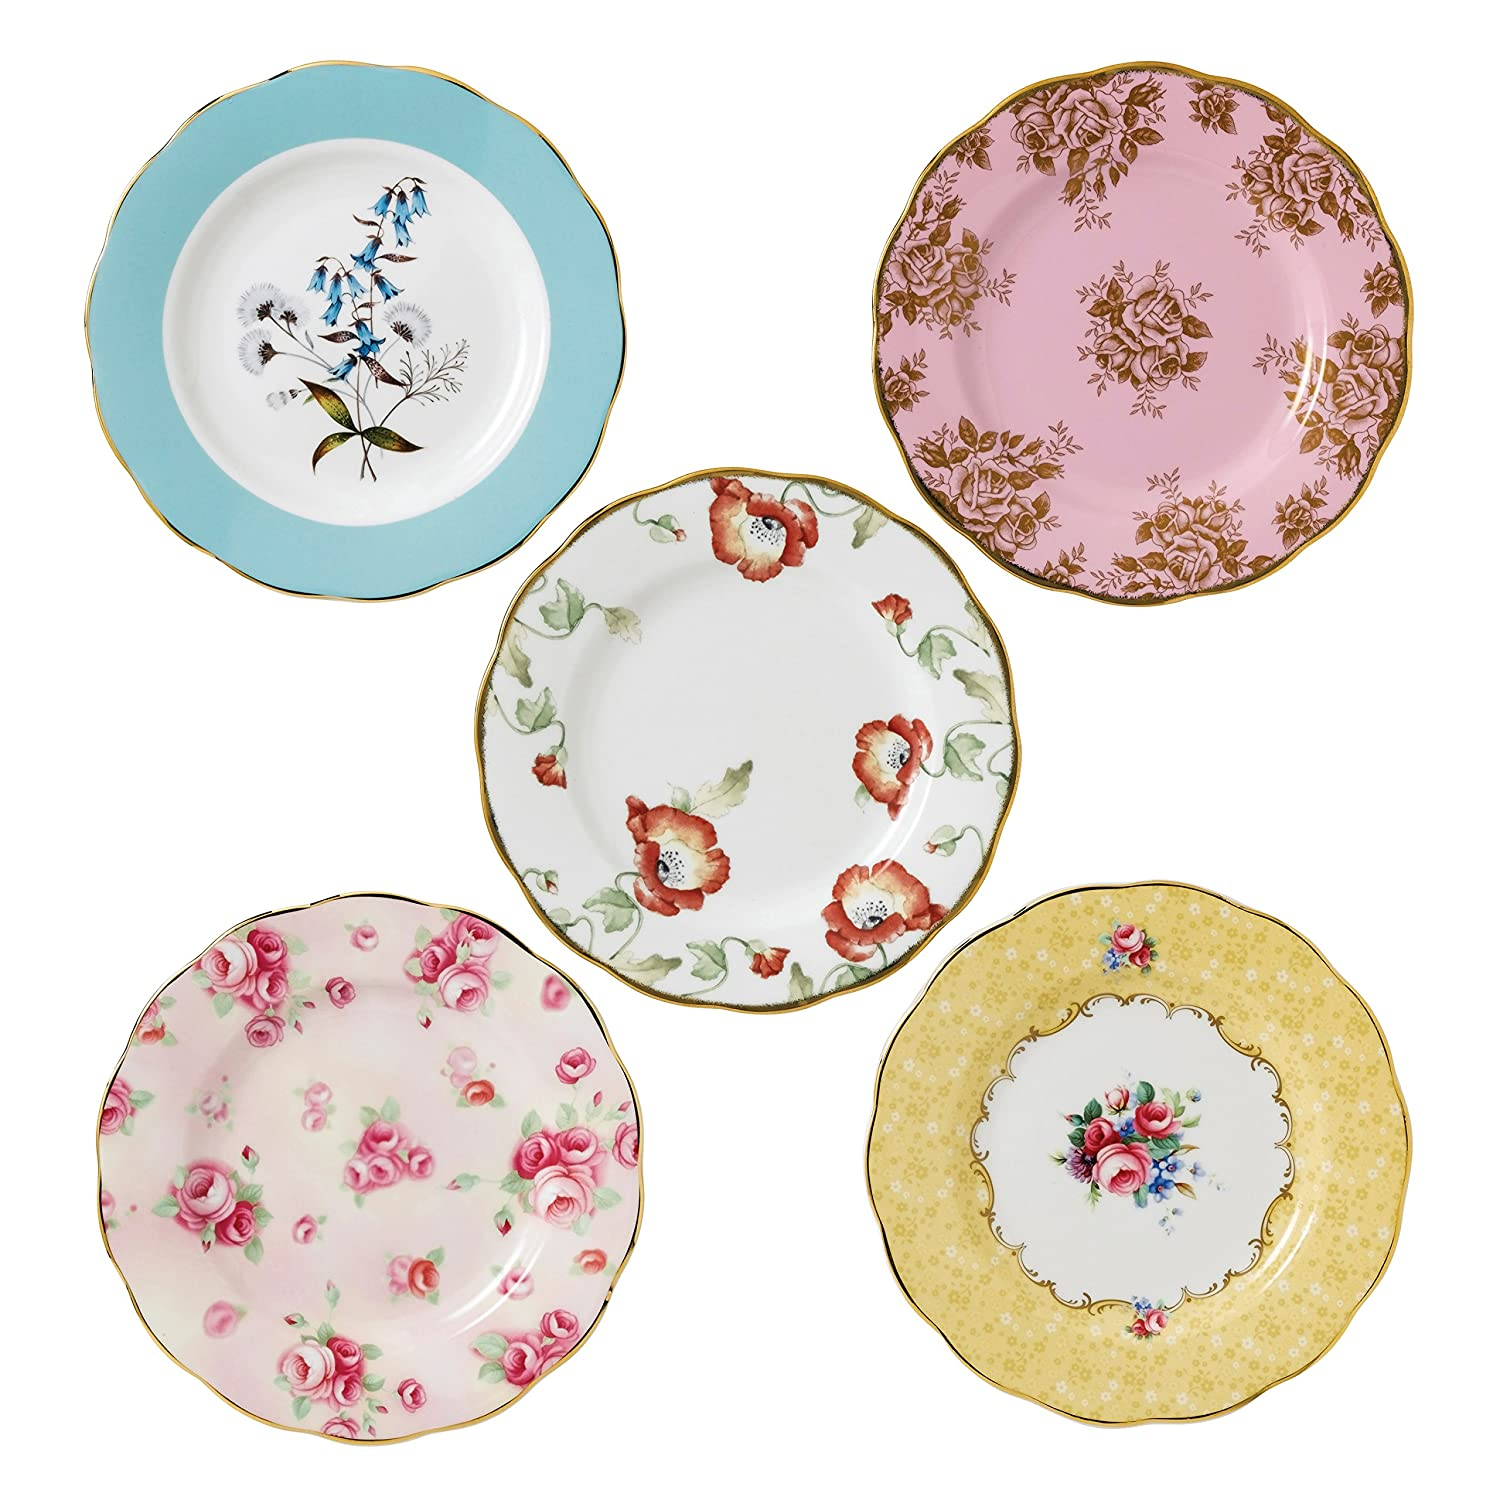 100 Years by Royal Albert 1950-1990 Plate, Set of 5, Multi-Colour, 20 cm/8-Inch Royal Doulton 40017562